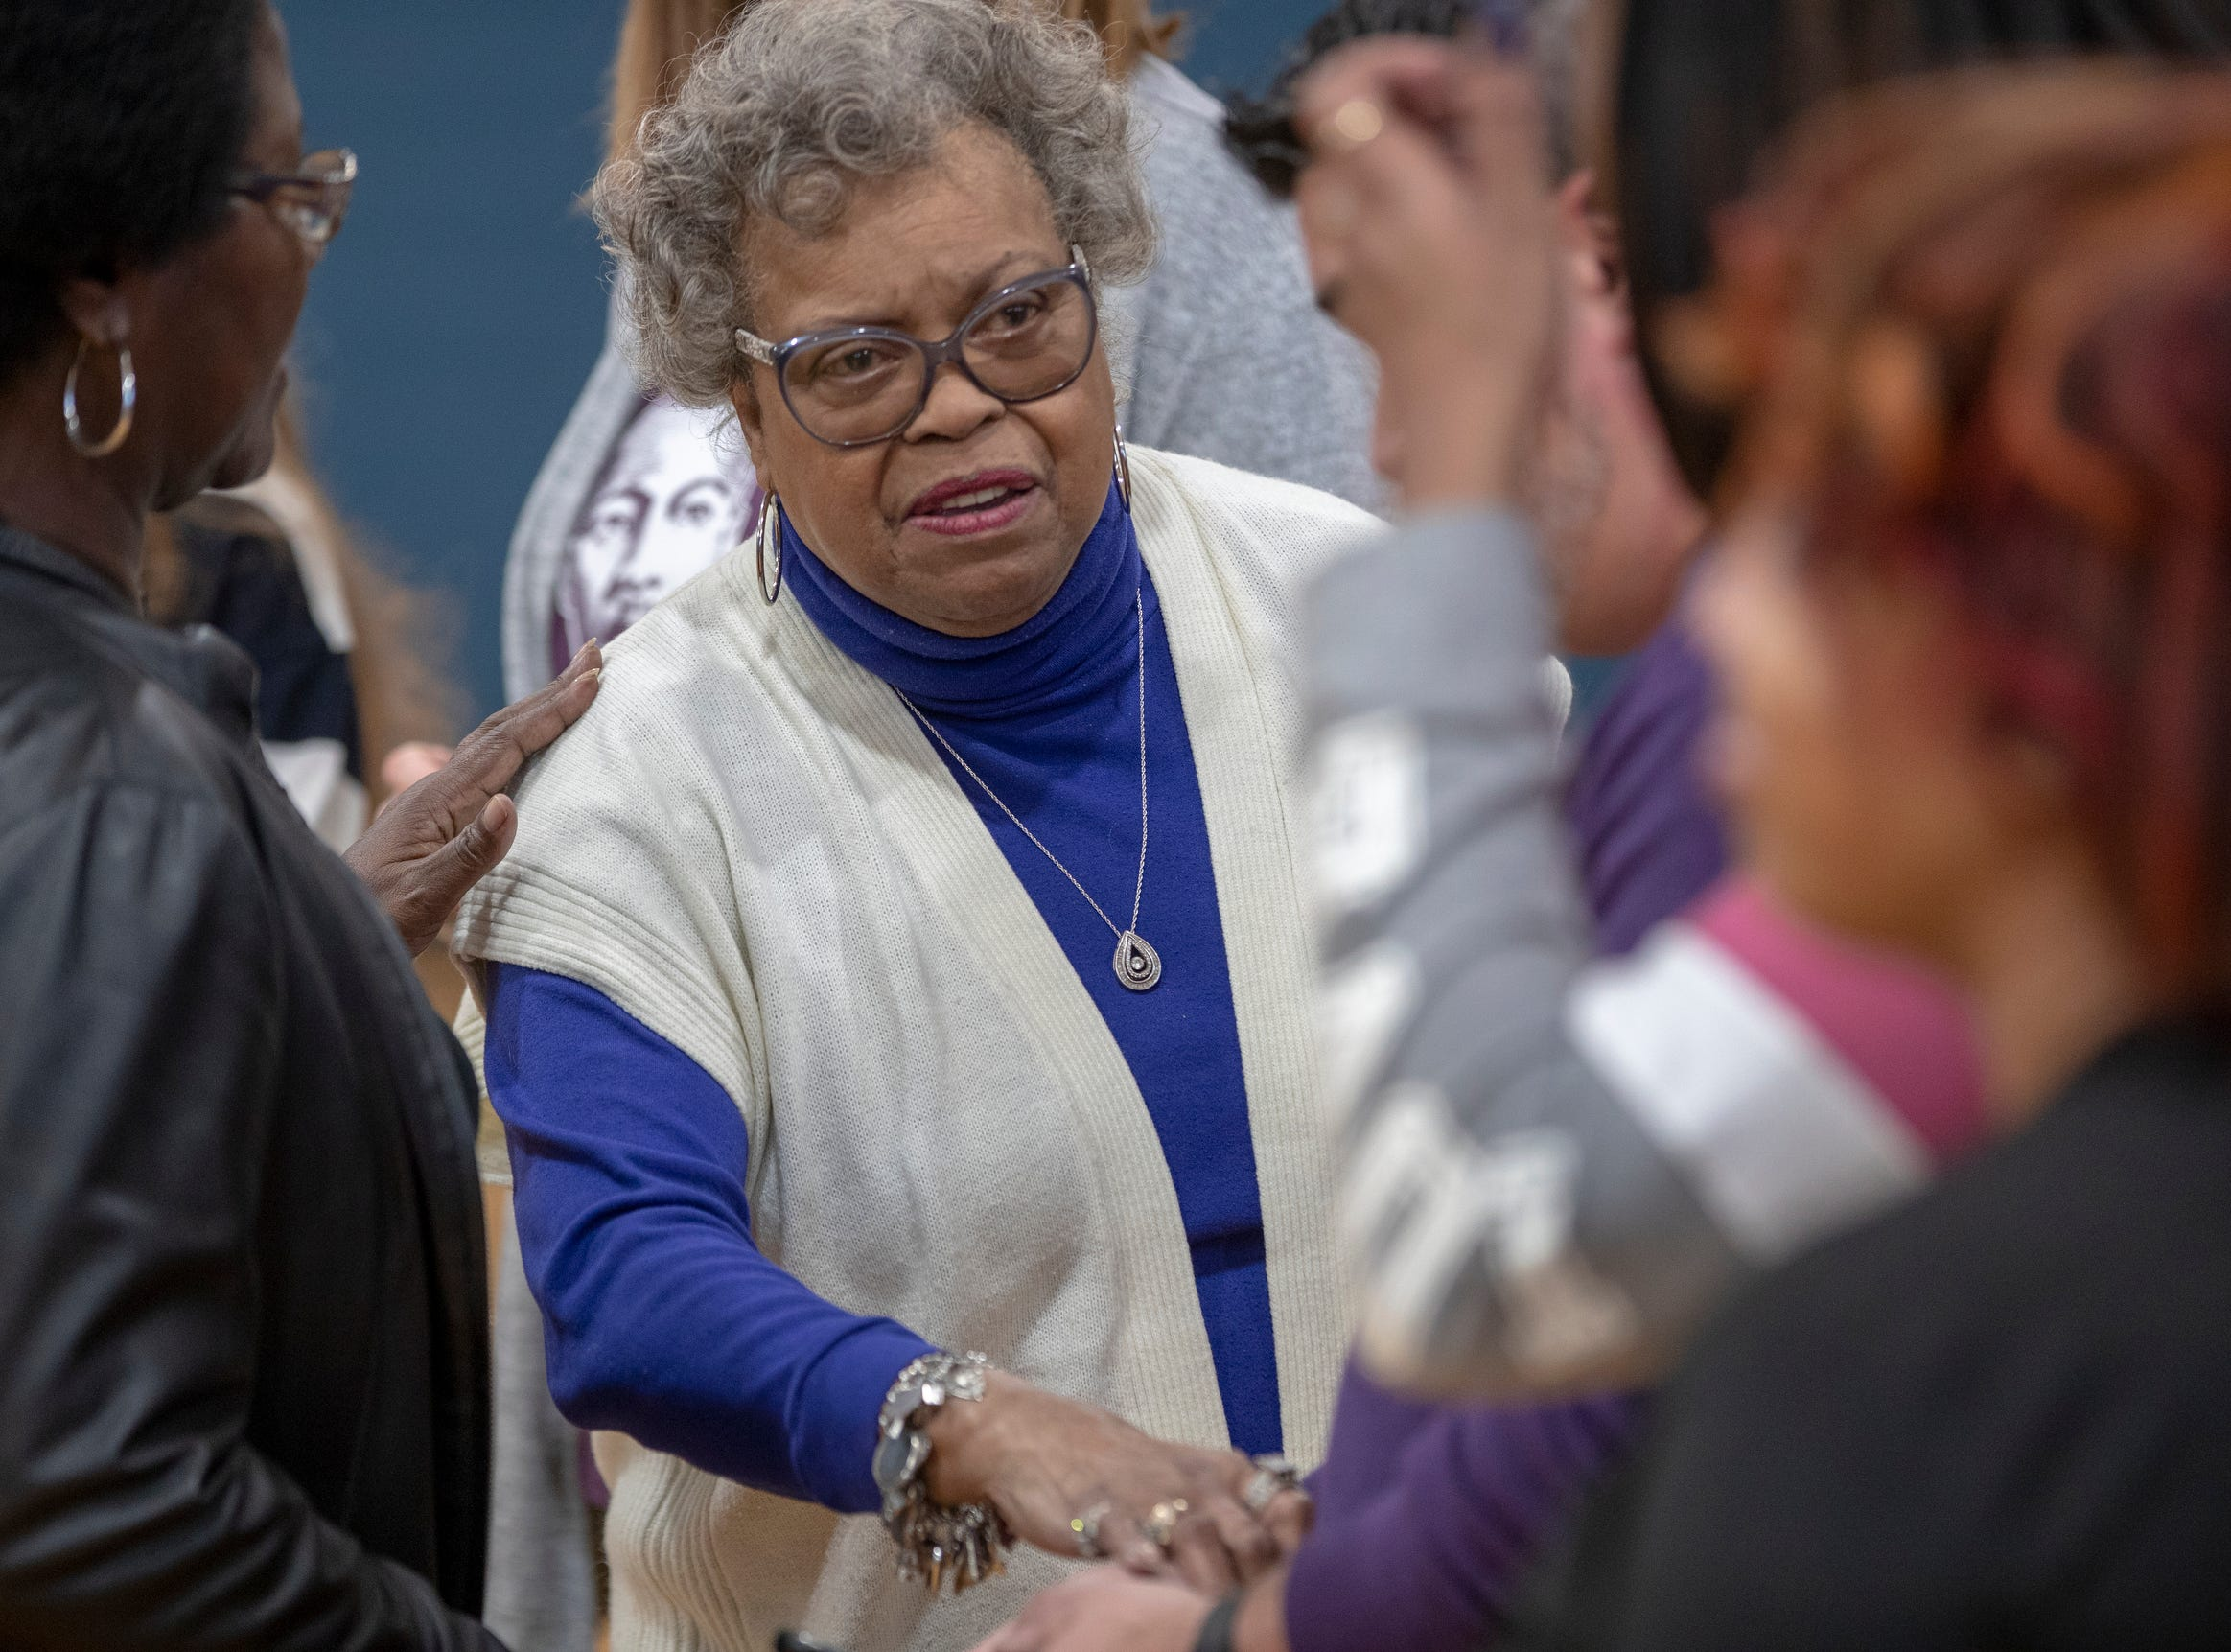 Frankie Casel, President of the Friends of Douglass, shakes a hand as she attends the day's dedication of the remodel of Frederick Douglass Park, Indianapolis, Monday, Jan. 21, 2019.